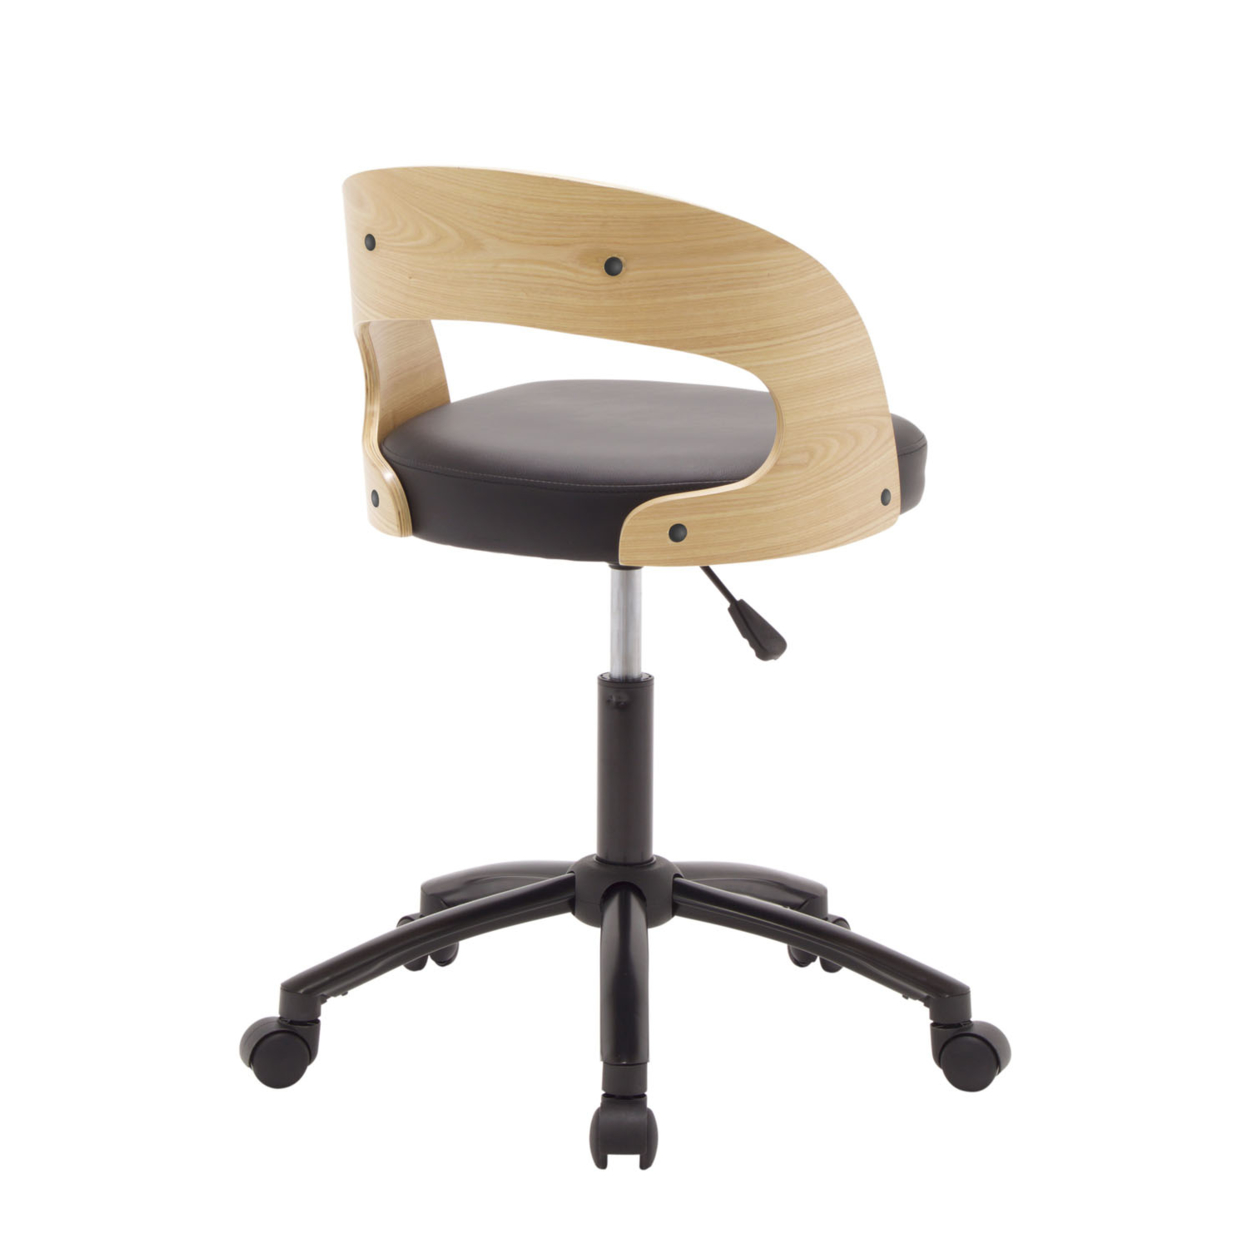 Offex Home Office Ashwood Chair - Black/Ashwood offex home office plinth ottoman latte